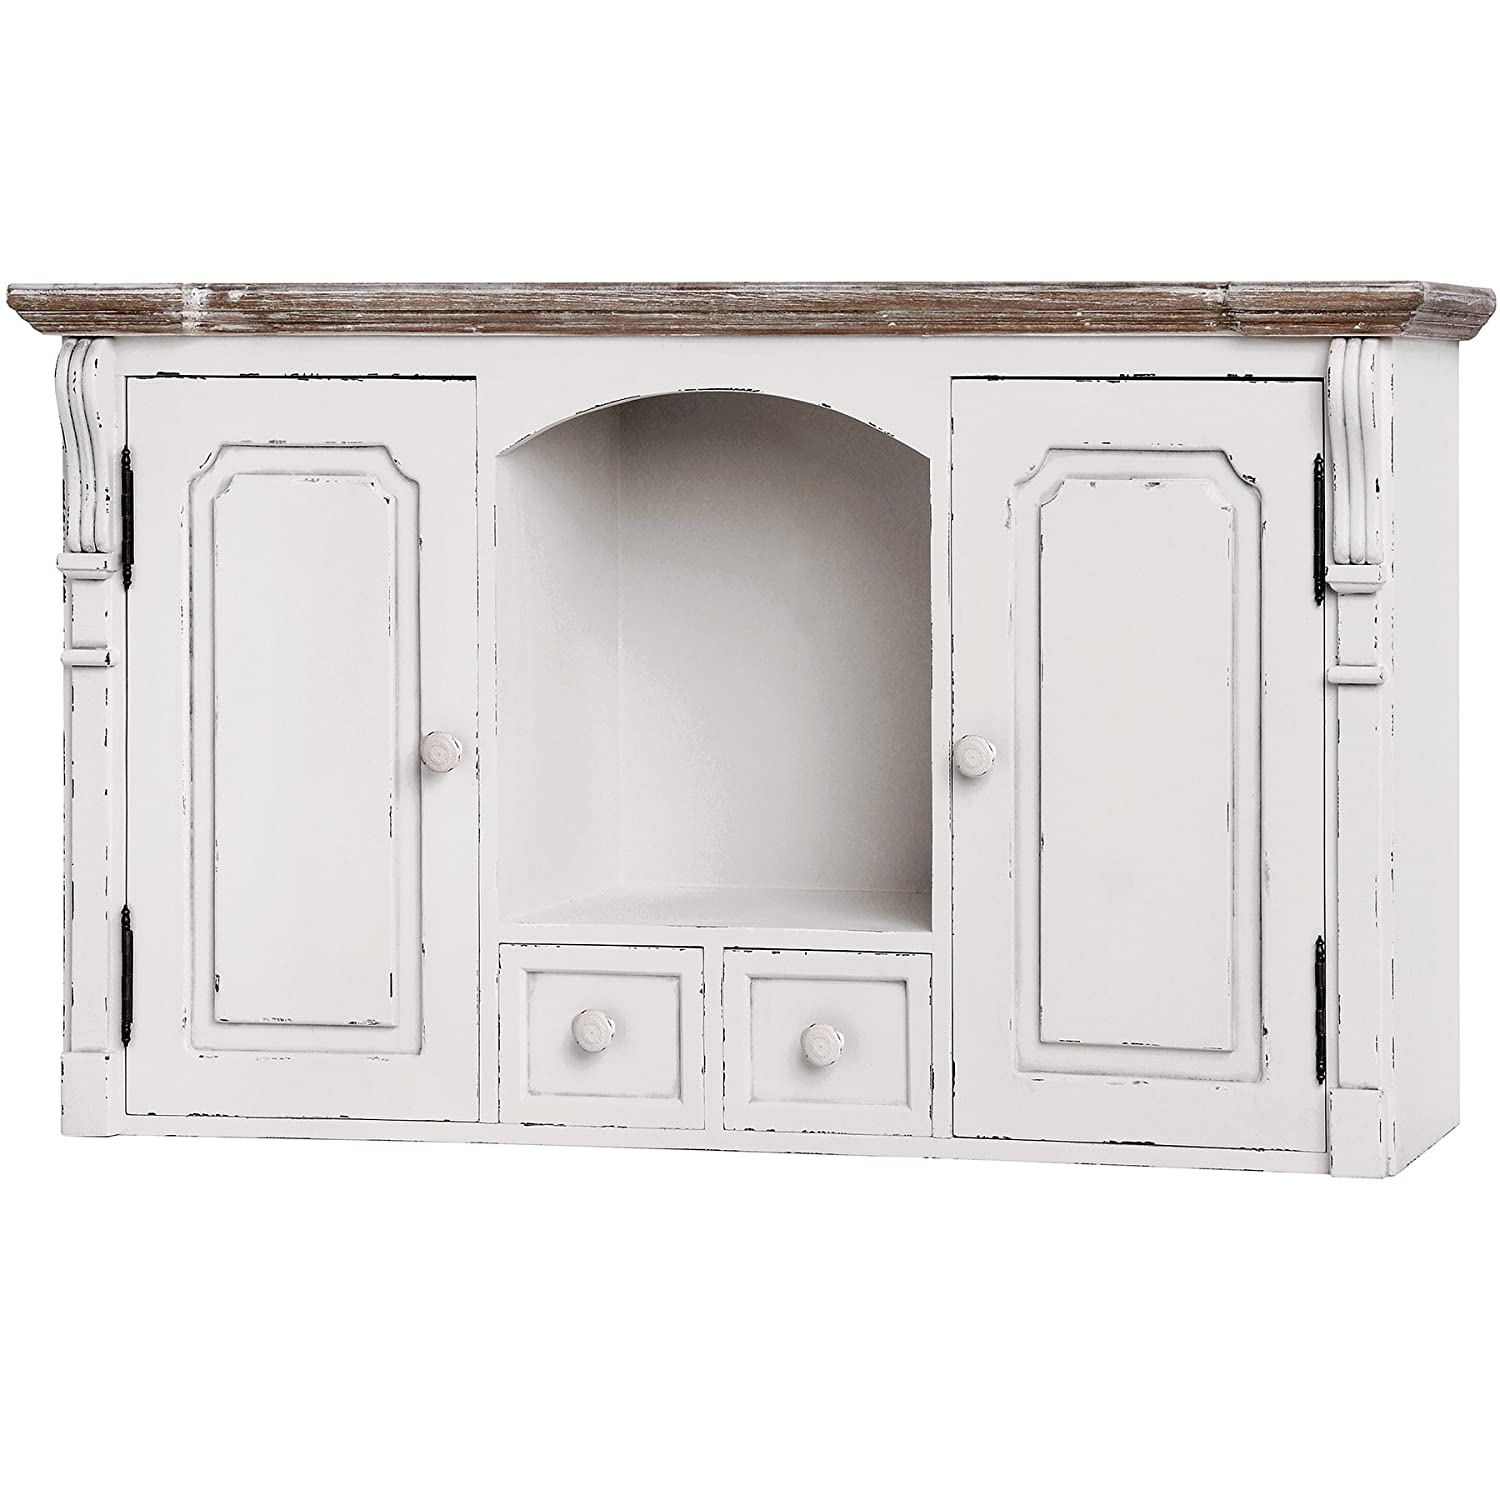 Country Style Antique White Wall Mounted Wooden 2 Drawers Twin Cupboard Cabinet Interior Flair